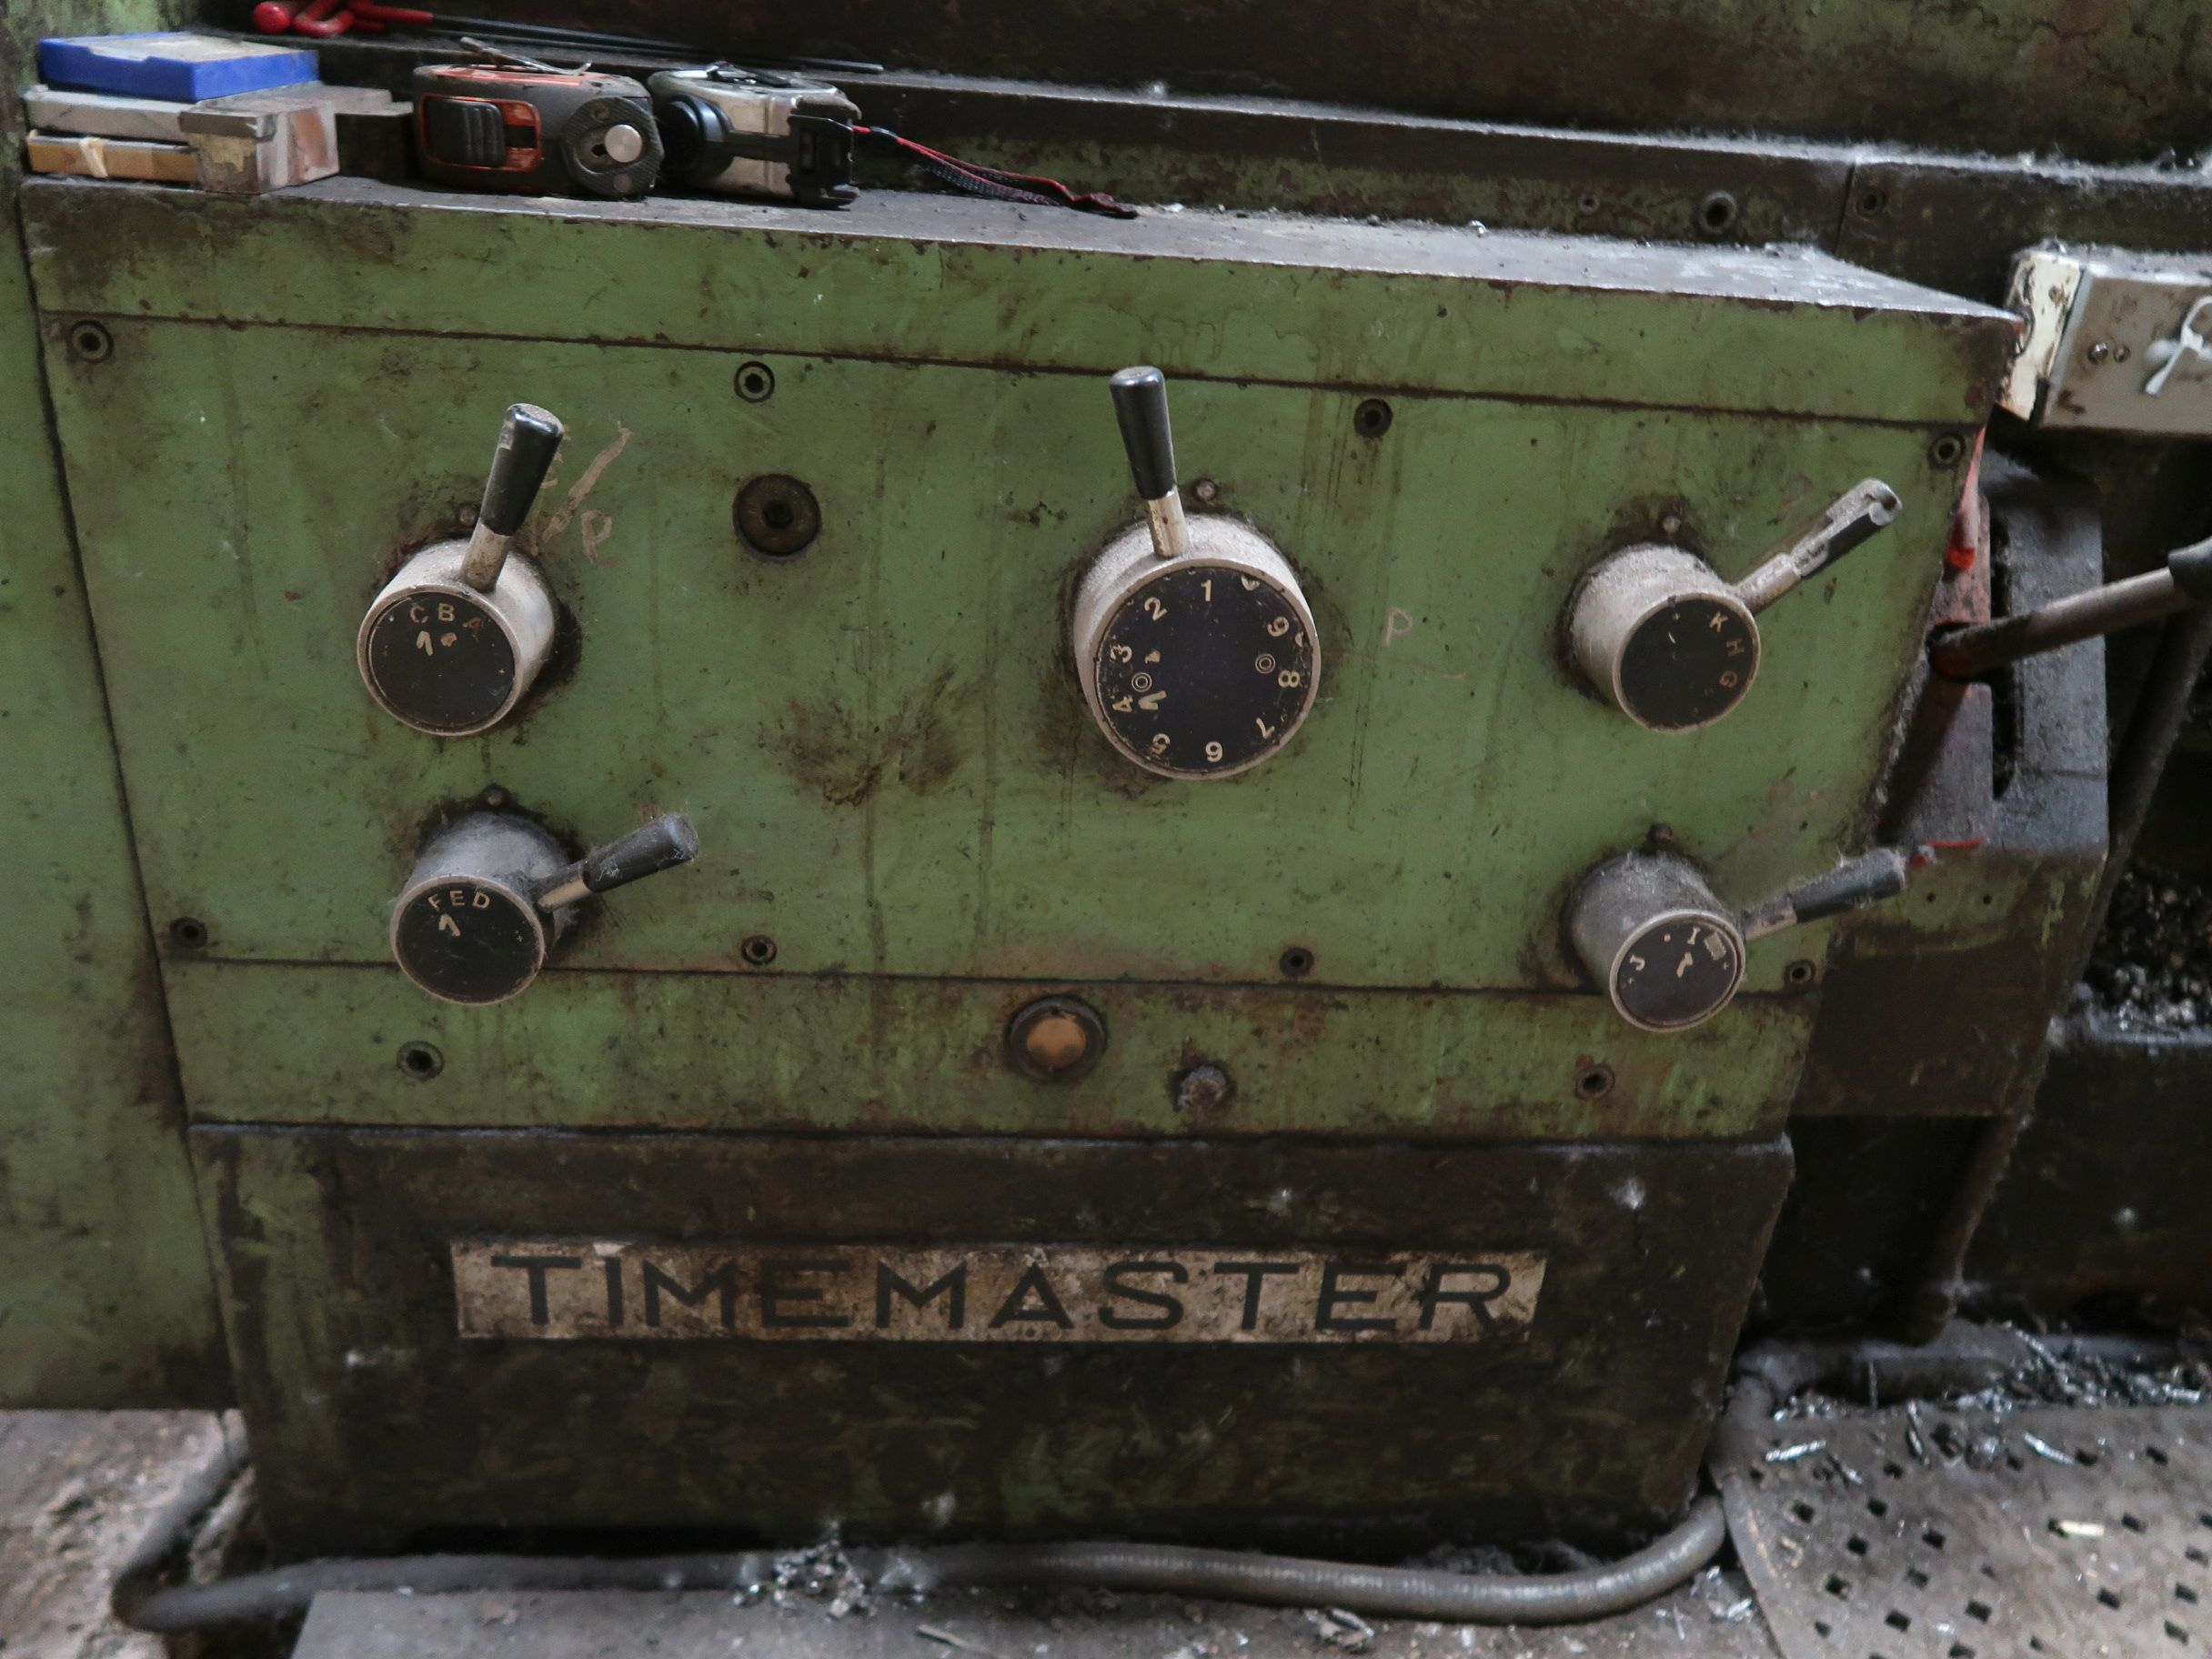 """40"""" X 160"""" GRUTZPE TIMEMASTER MODEL 4000/500 DOUBLE CHUCK ENGINE LATHE; SPEEDS TO 500 RPM, APPROX. - Image 7 of 14"""